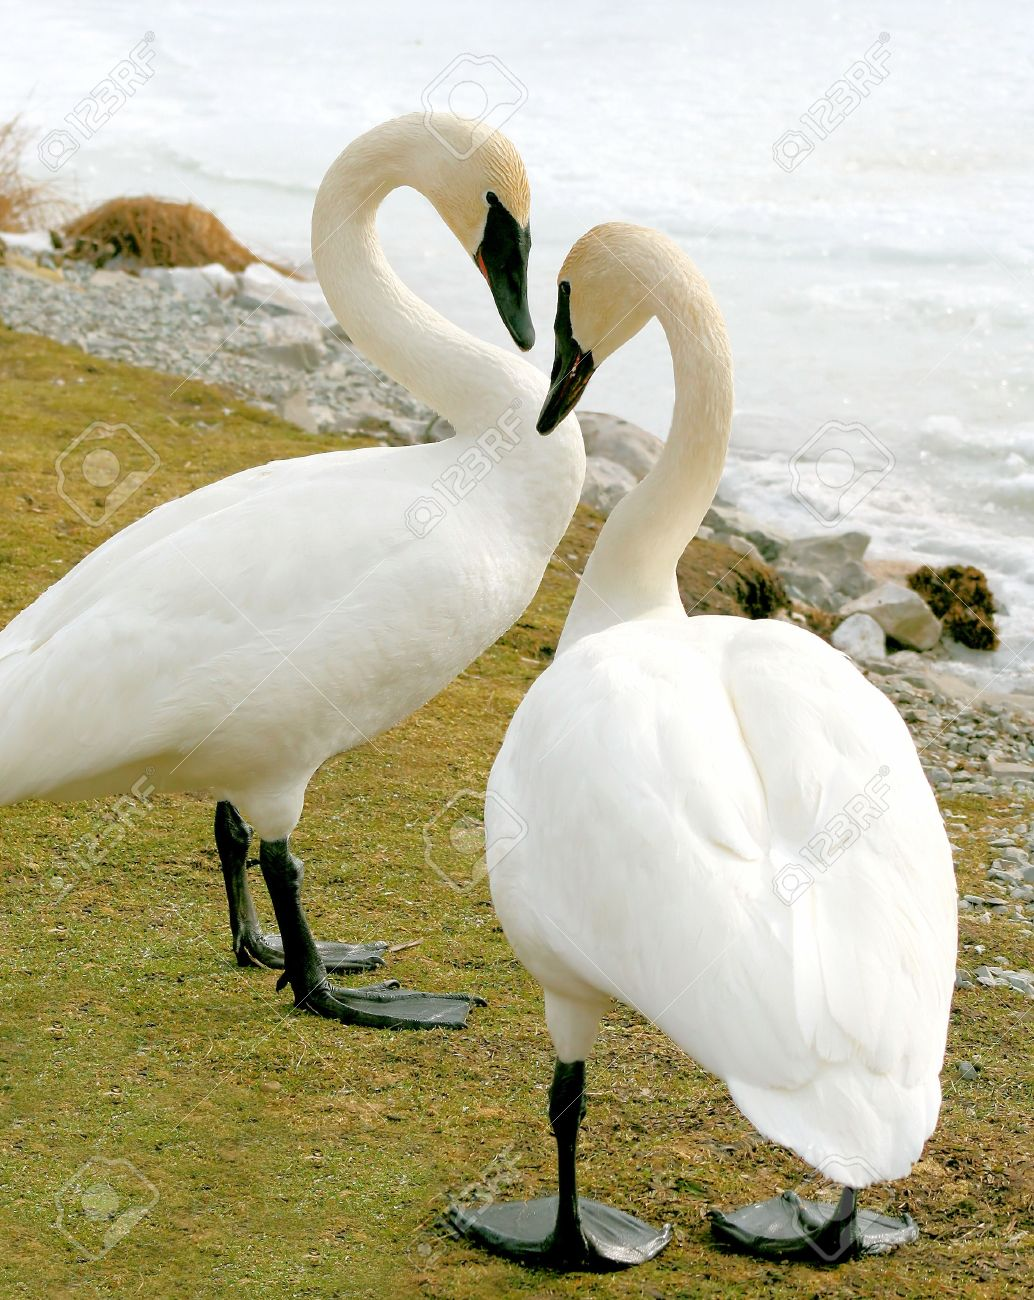 Trumpeter Swans Male And Female Stock Photo Picture And Royalty Free Image Image 9162045 New users enjoy 60% off. trumpeter swans male and female